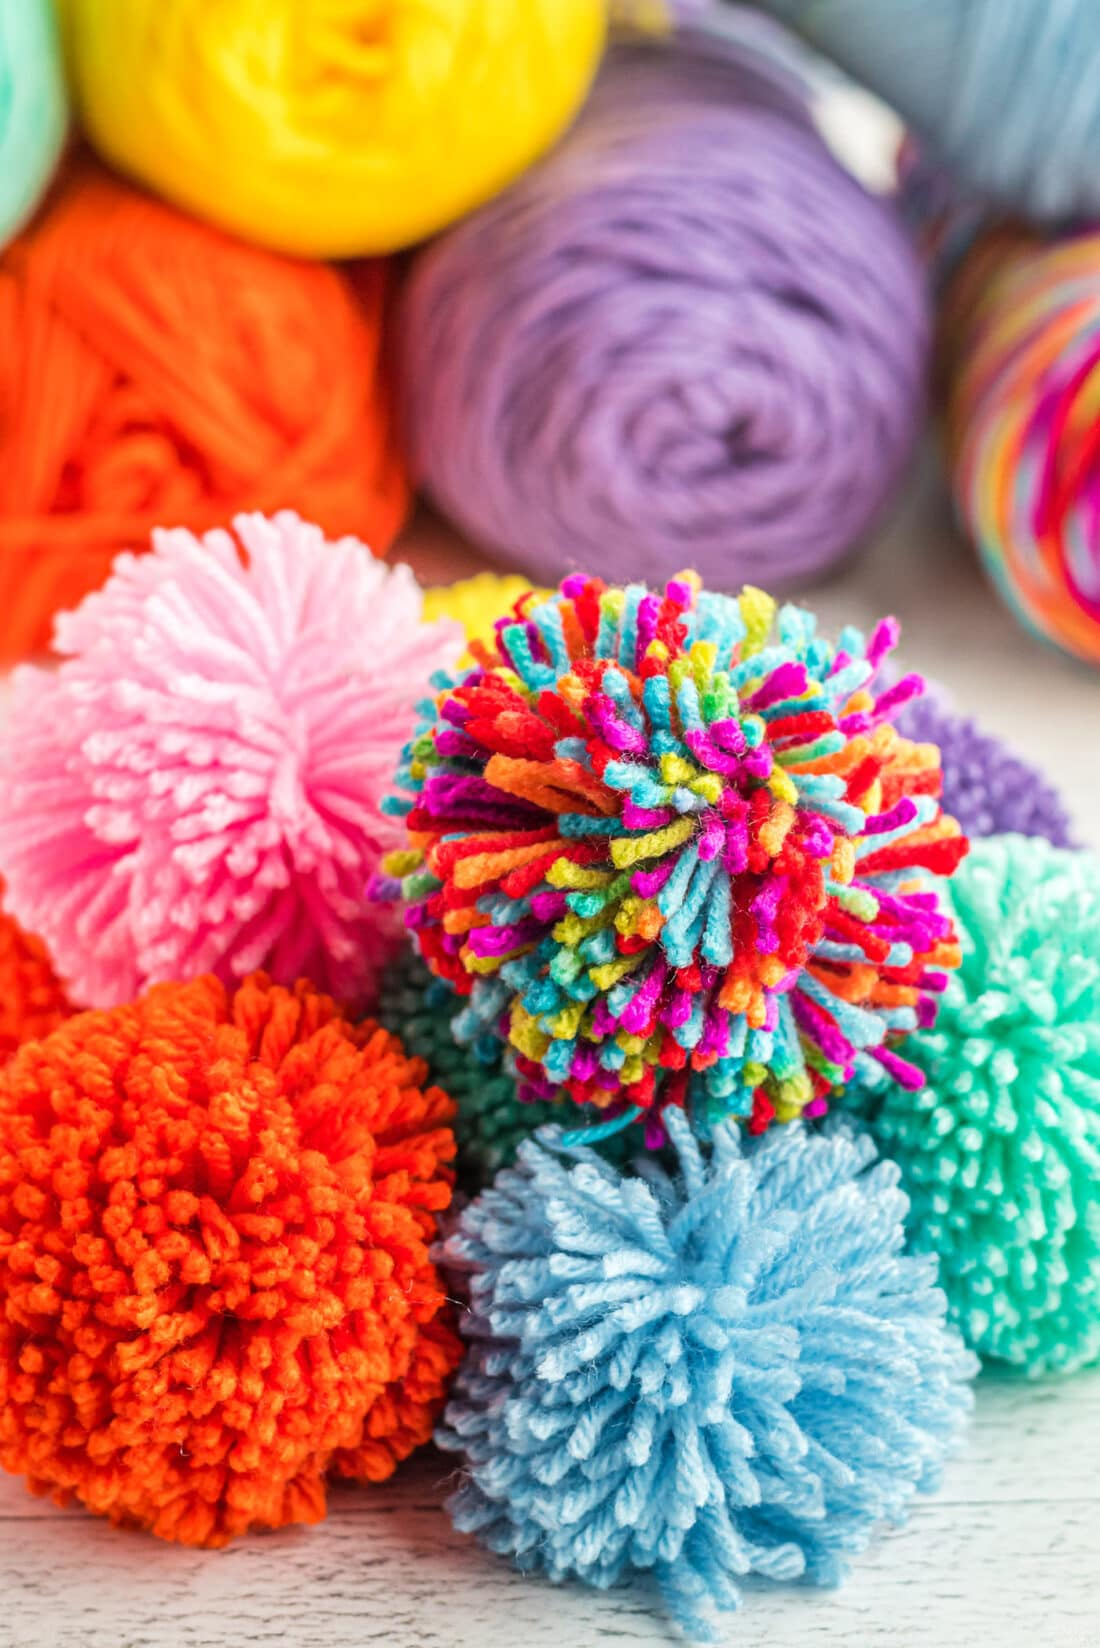 yarn pom poms piled on each other